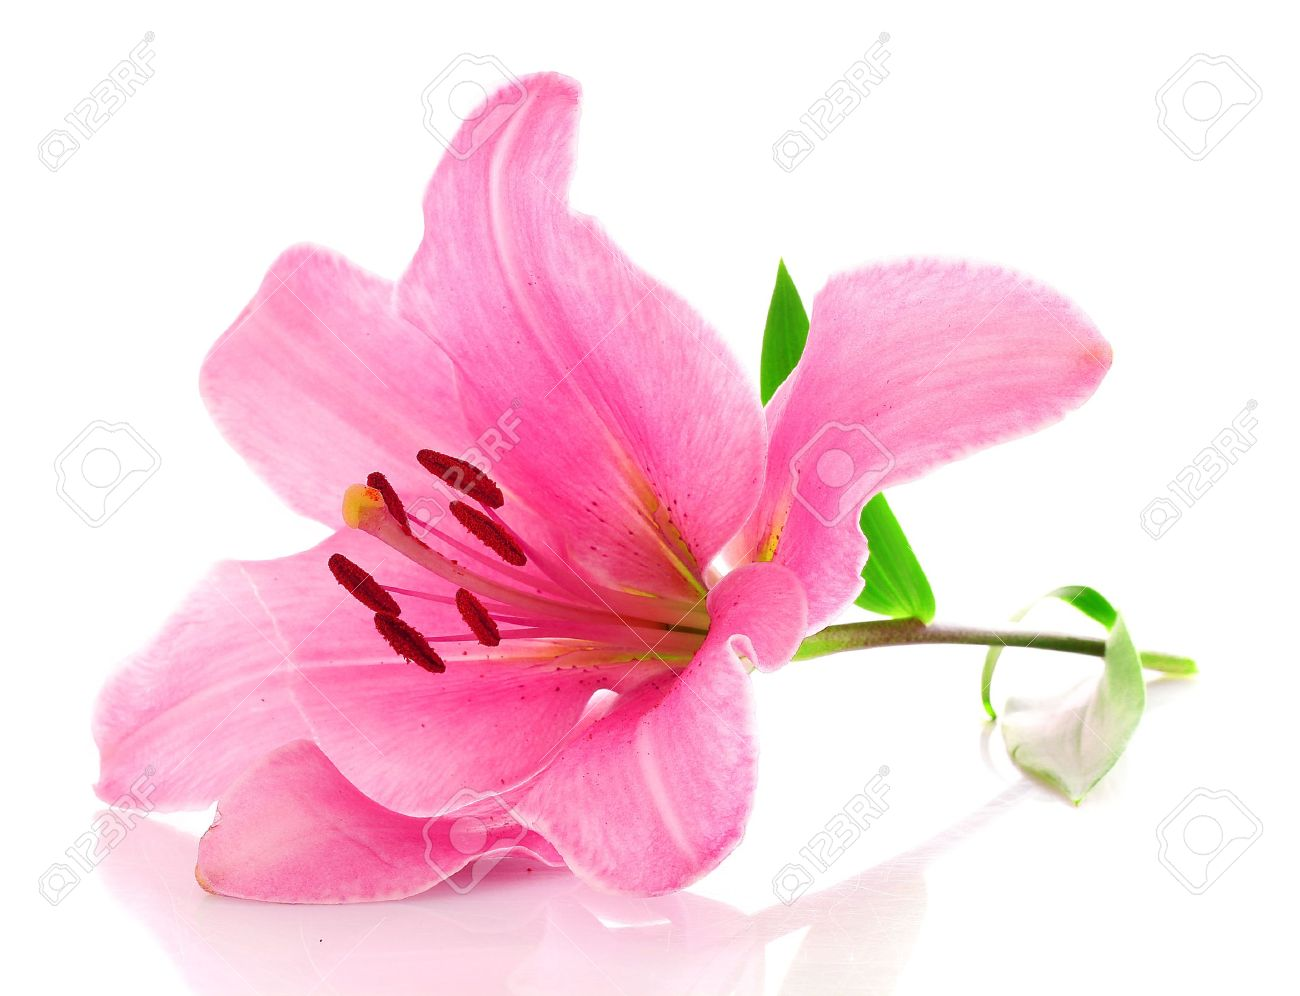 lily flower stock photos  pictures. royalty free lily flower, Natural flower